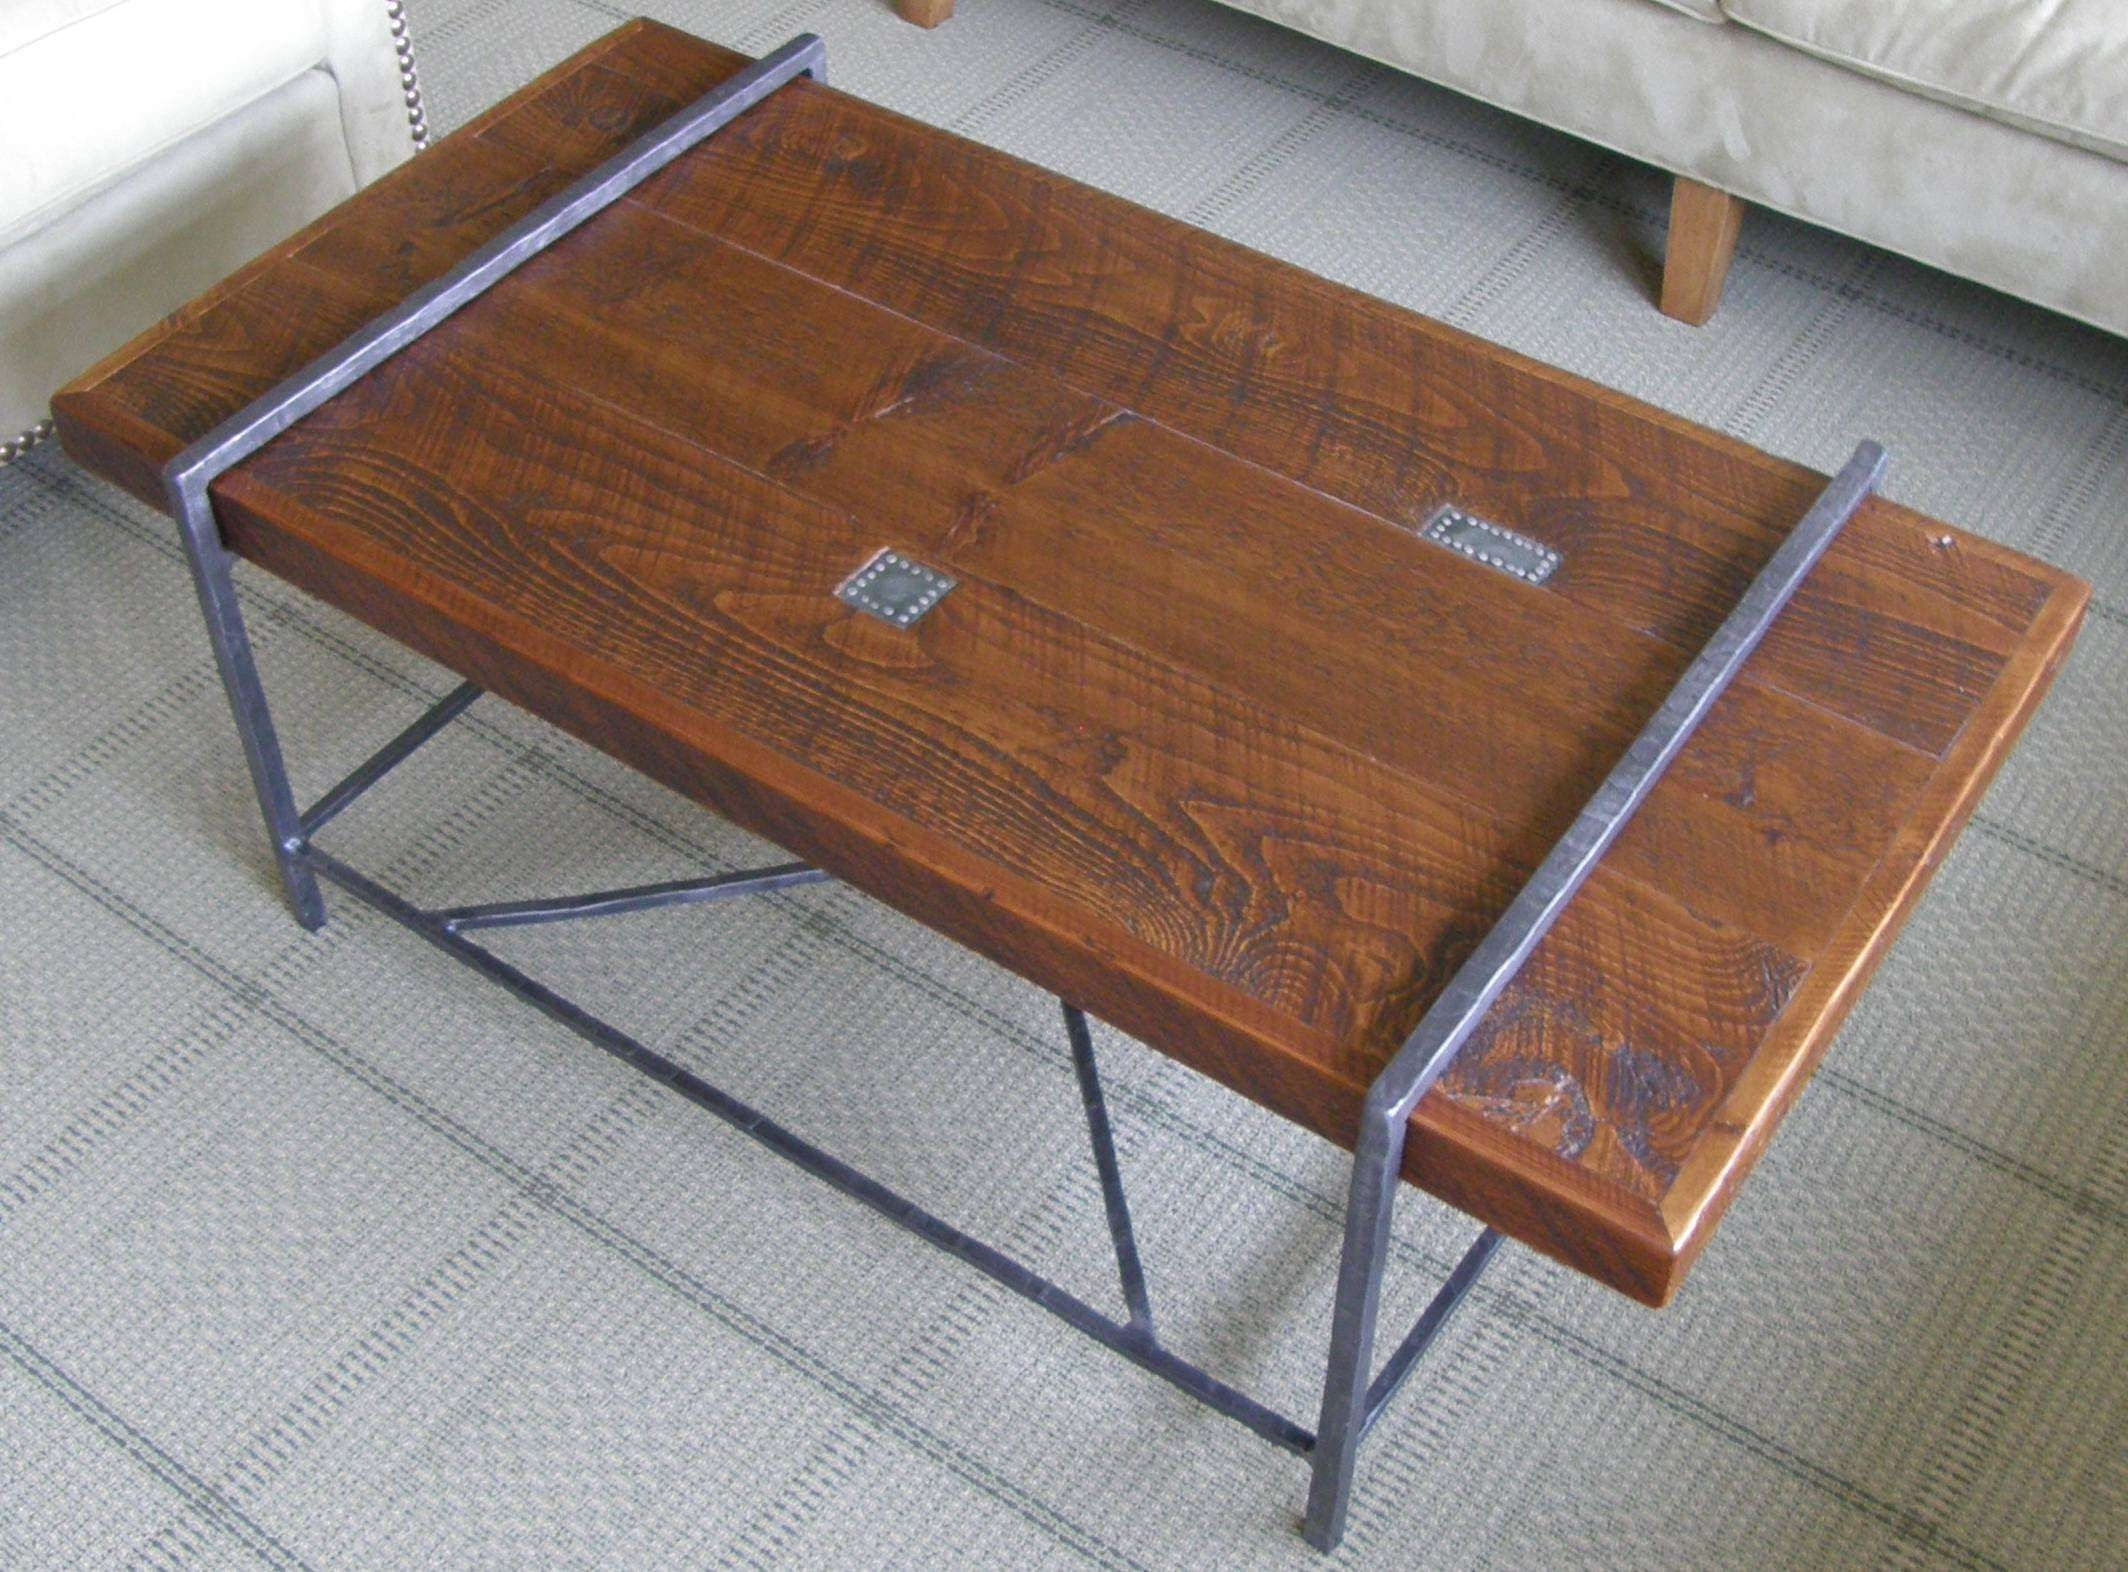 Most Popular Steel And Wood Coffee Tables With Regard To Reclaimed Wood Coffee Table Top With Metal Base – Youtube (View 19 of 20)